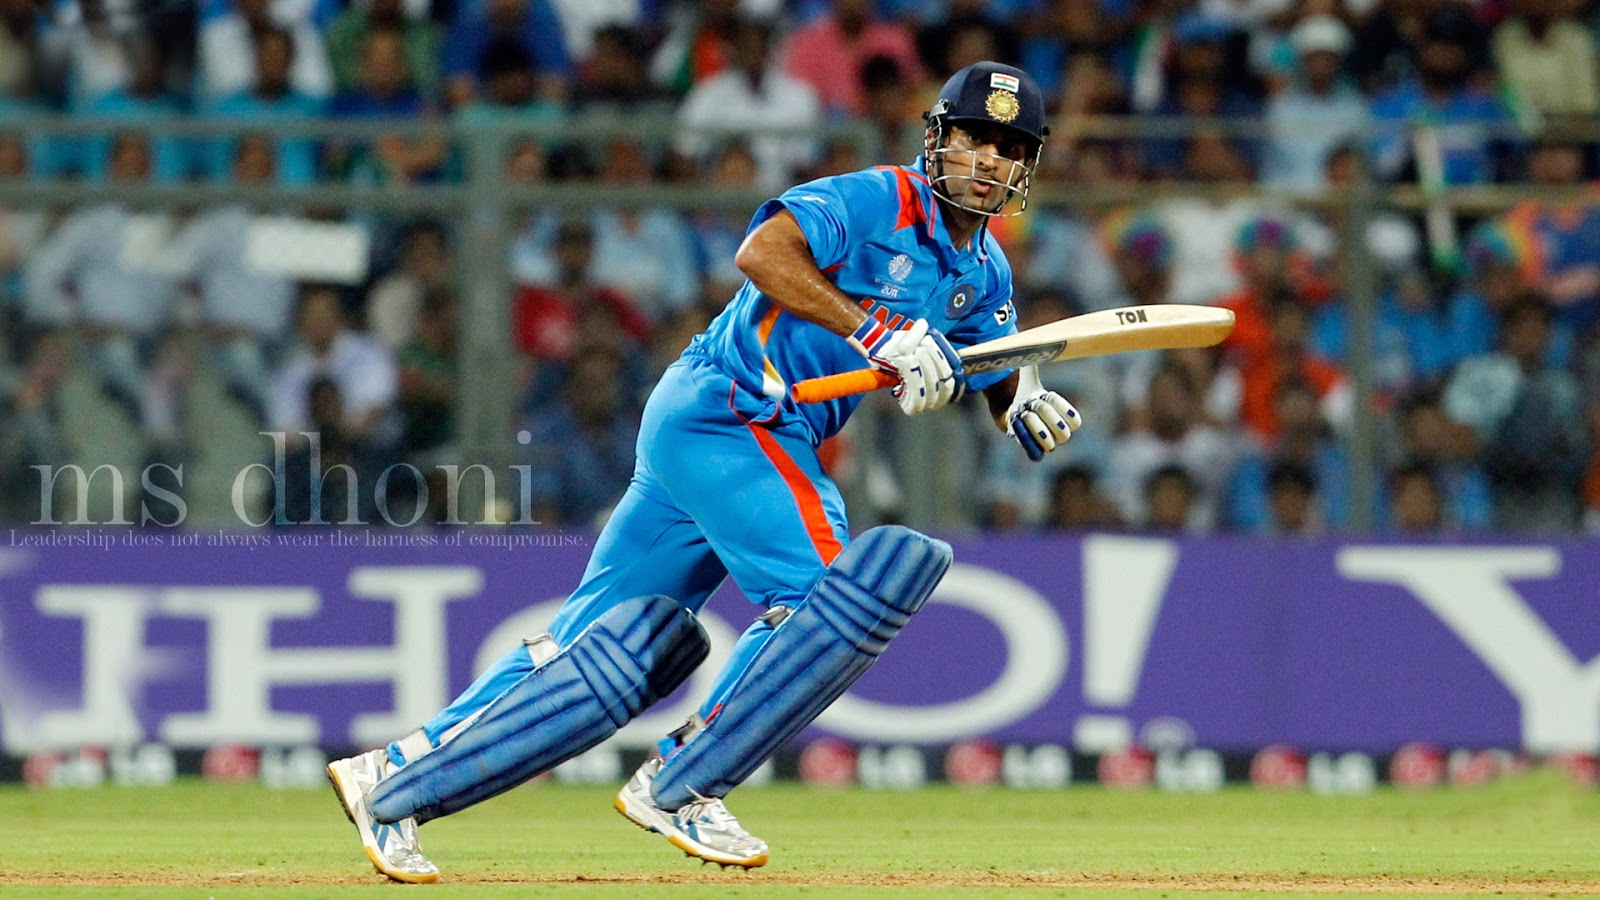 Ms Dhoni Wallpapers For Mobile